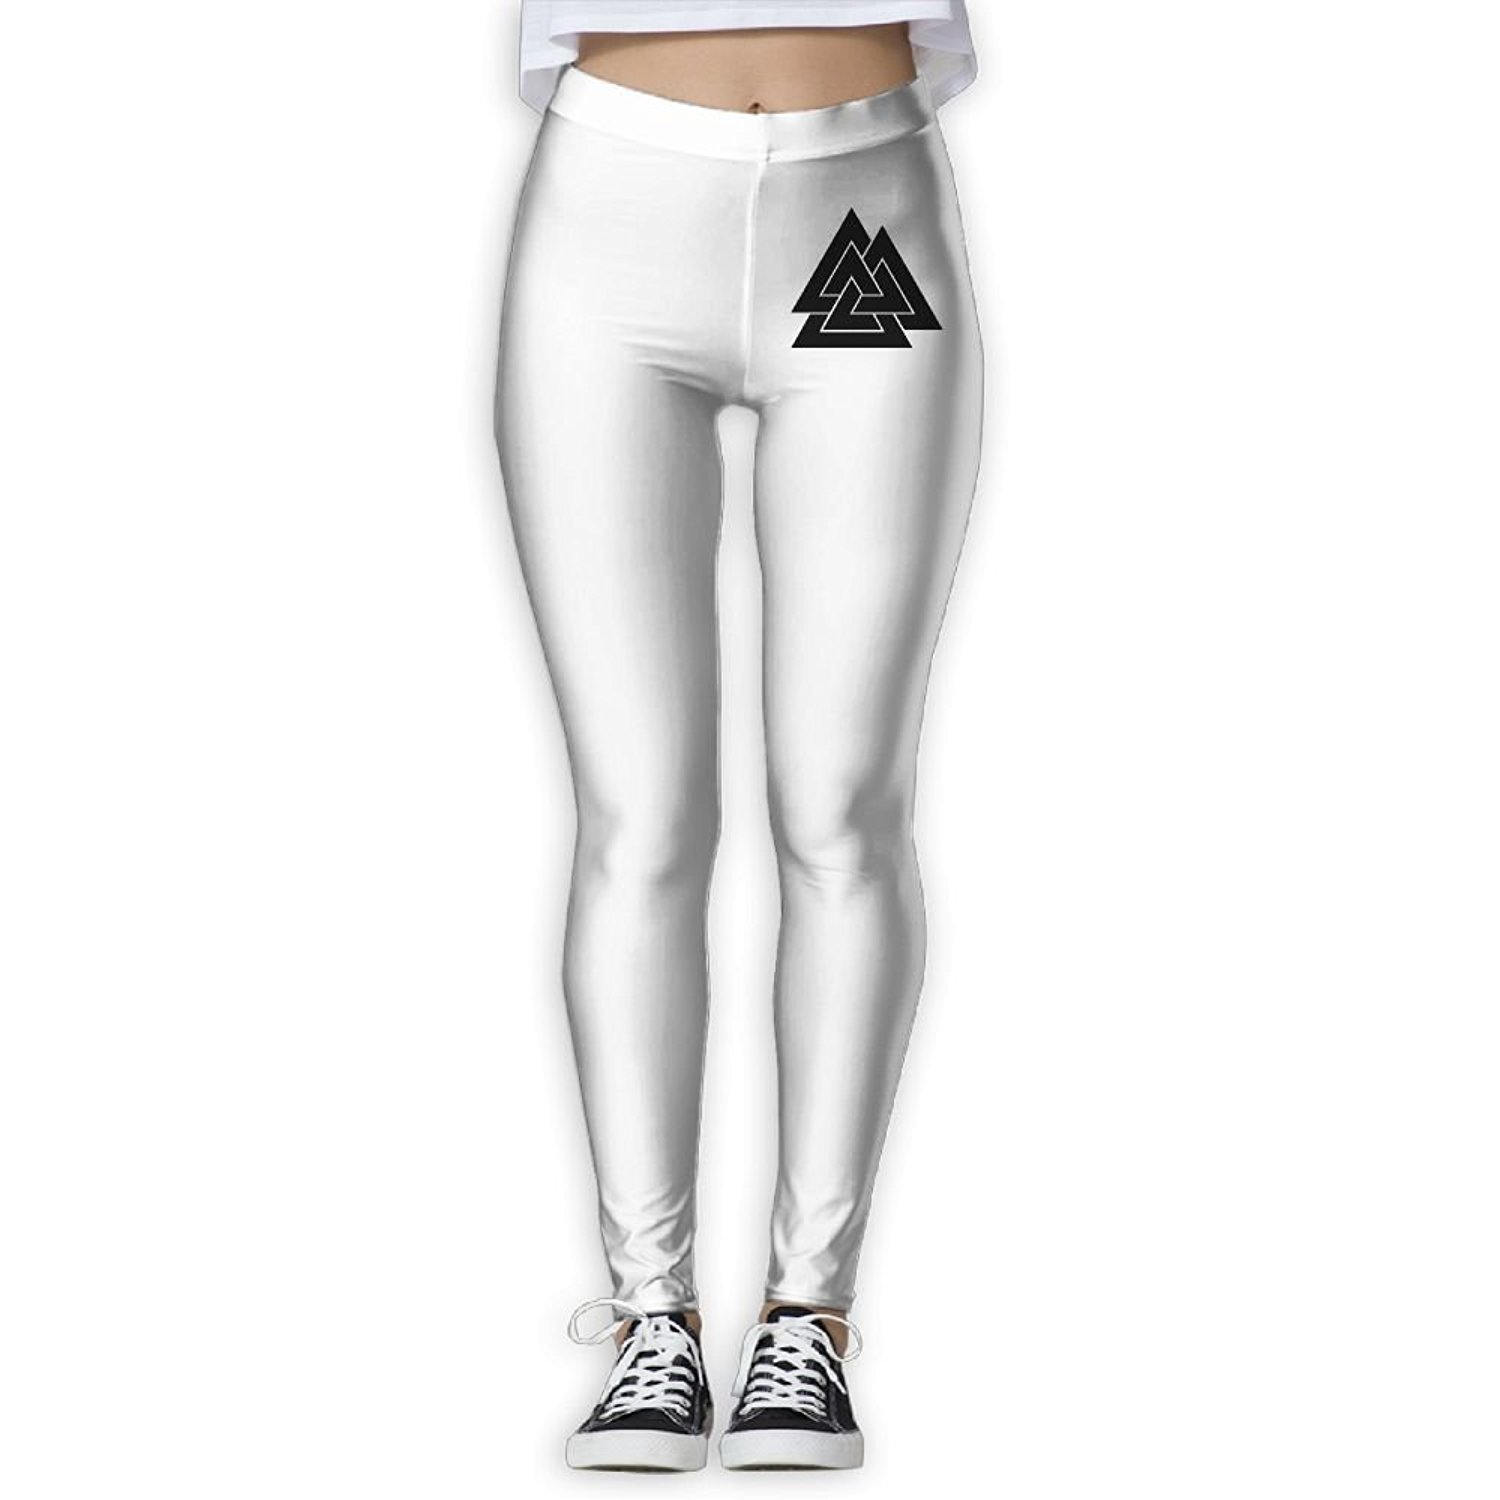 676362cae380a Get Quotations · HUPPNAME Valknut Viking Age Symbol Norse Warrior - Yoga  Pants Gym Pants Athletic Pants